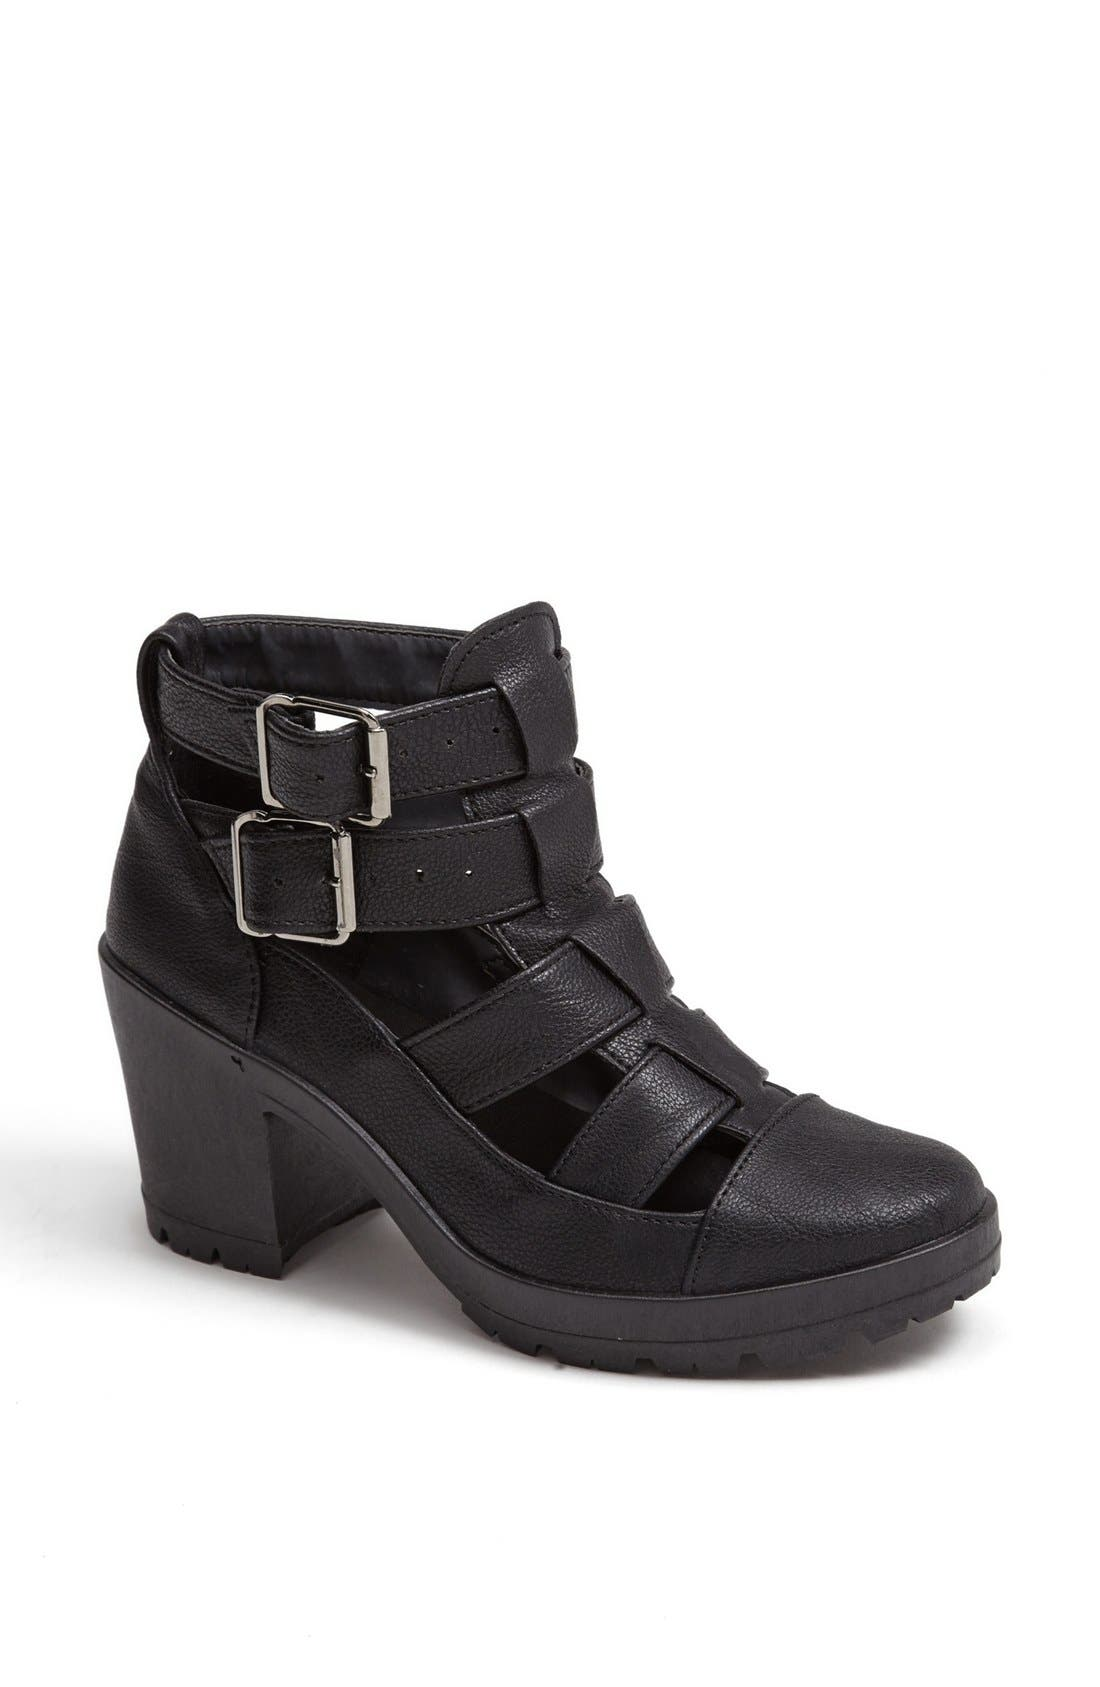 Main Image - Topshop 'Mega' Ankle Boot